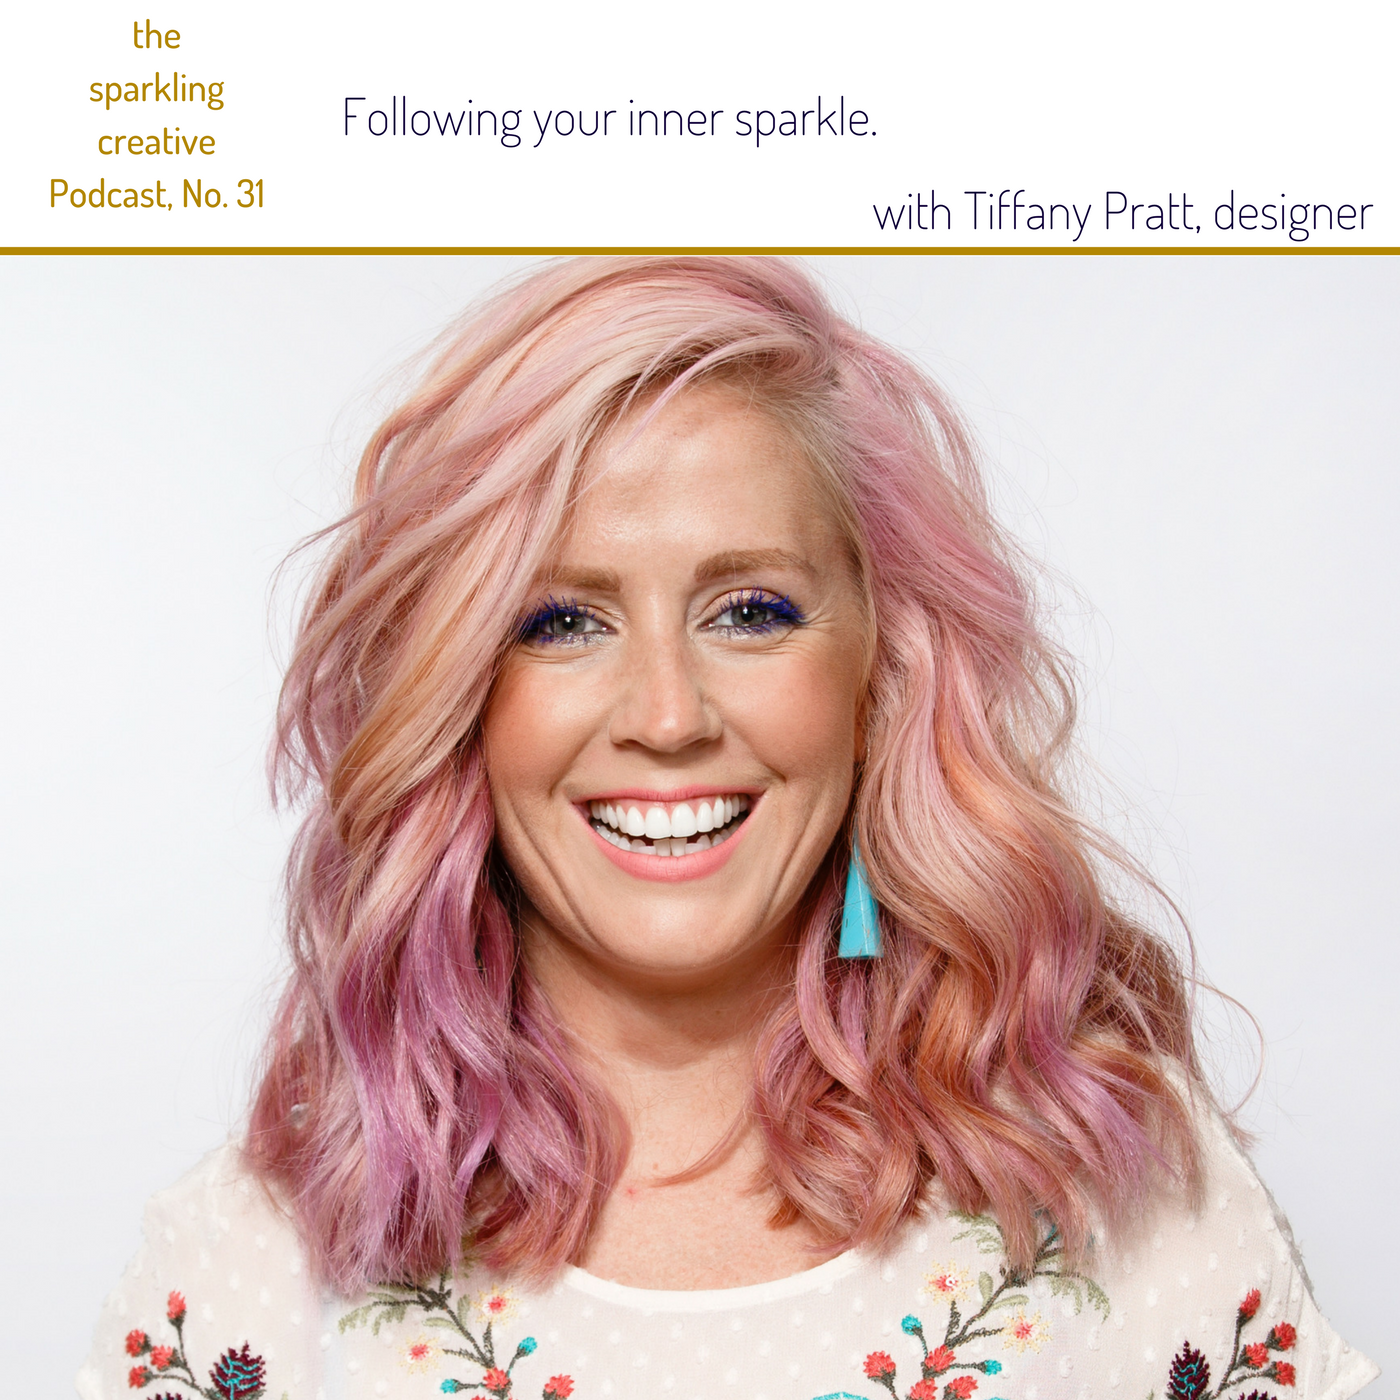 The sparkling creative Podcast Episode No. 31. Following your inner sparkle. with Tiffany Pratt